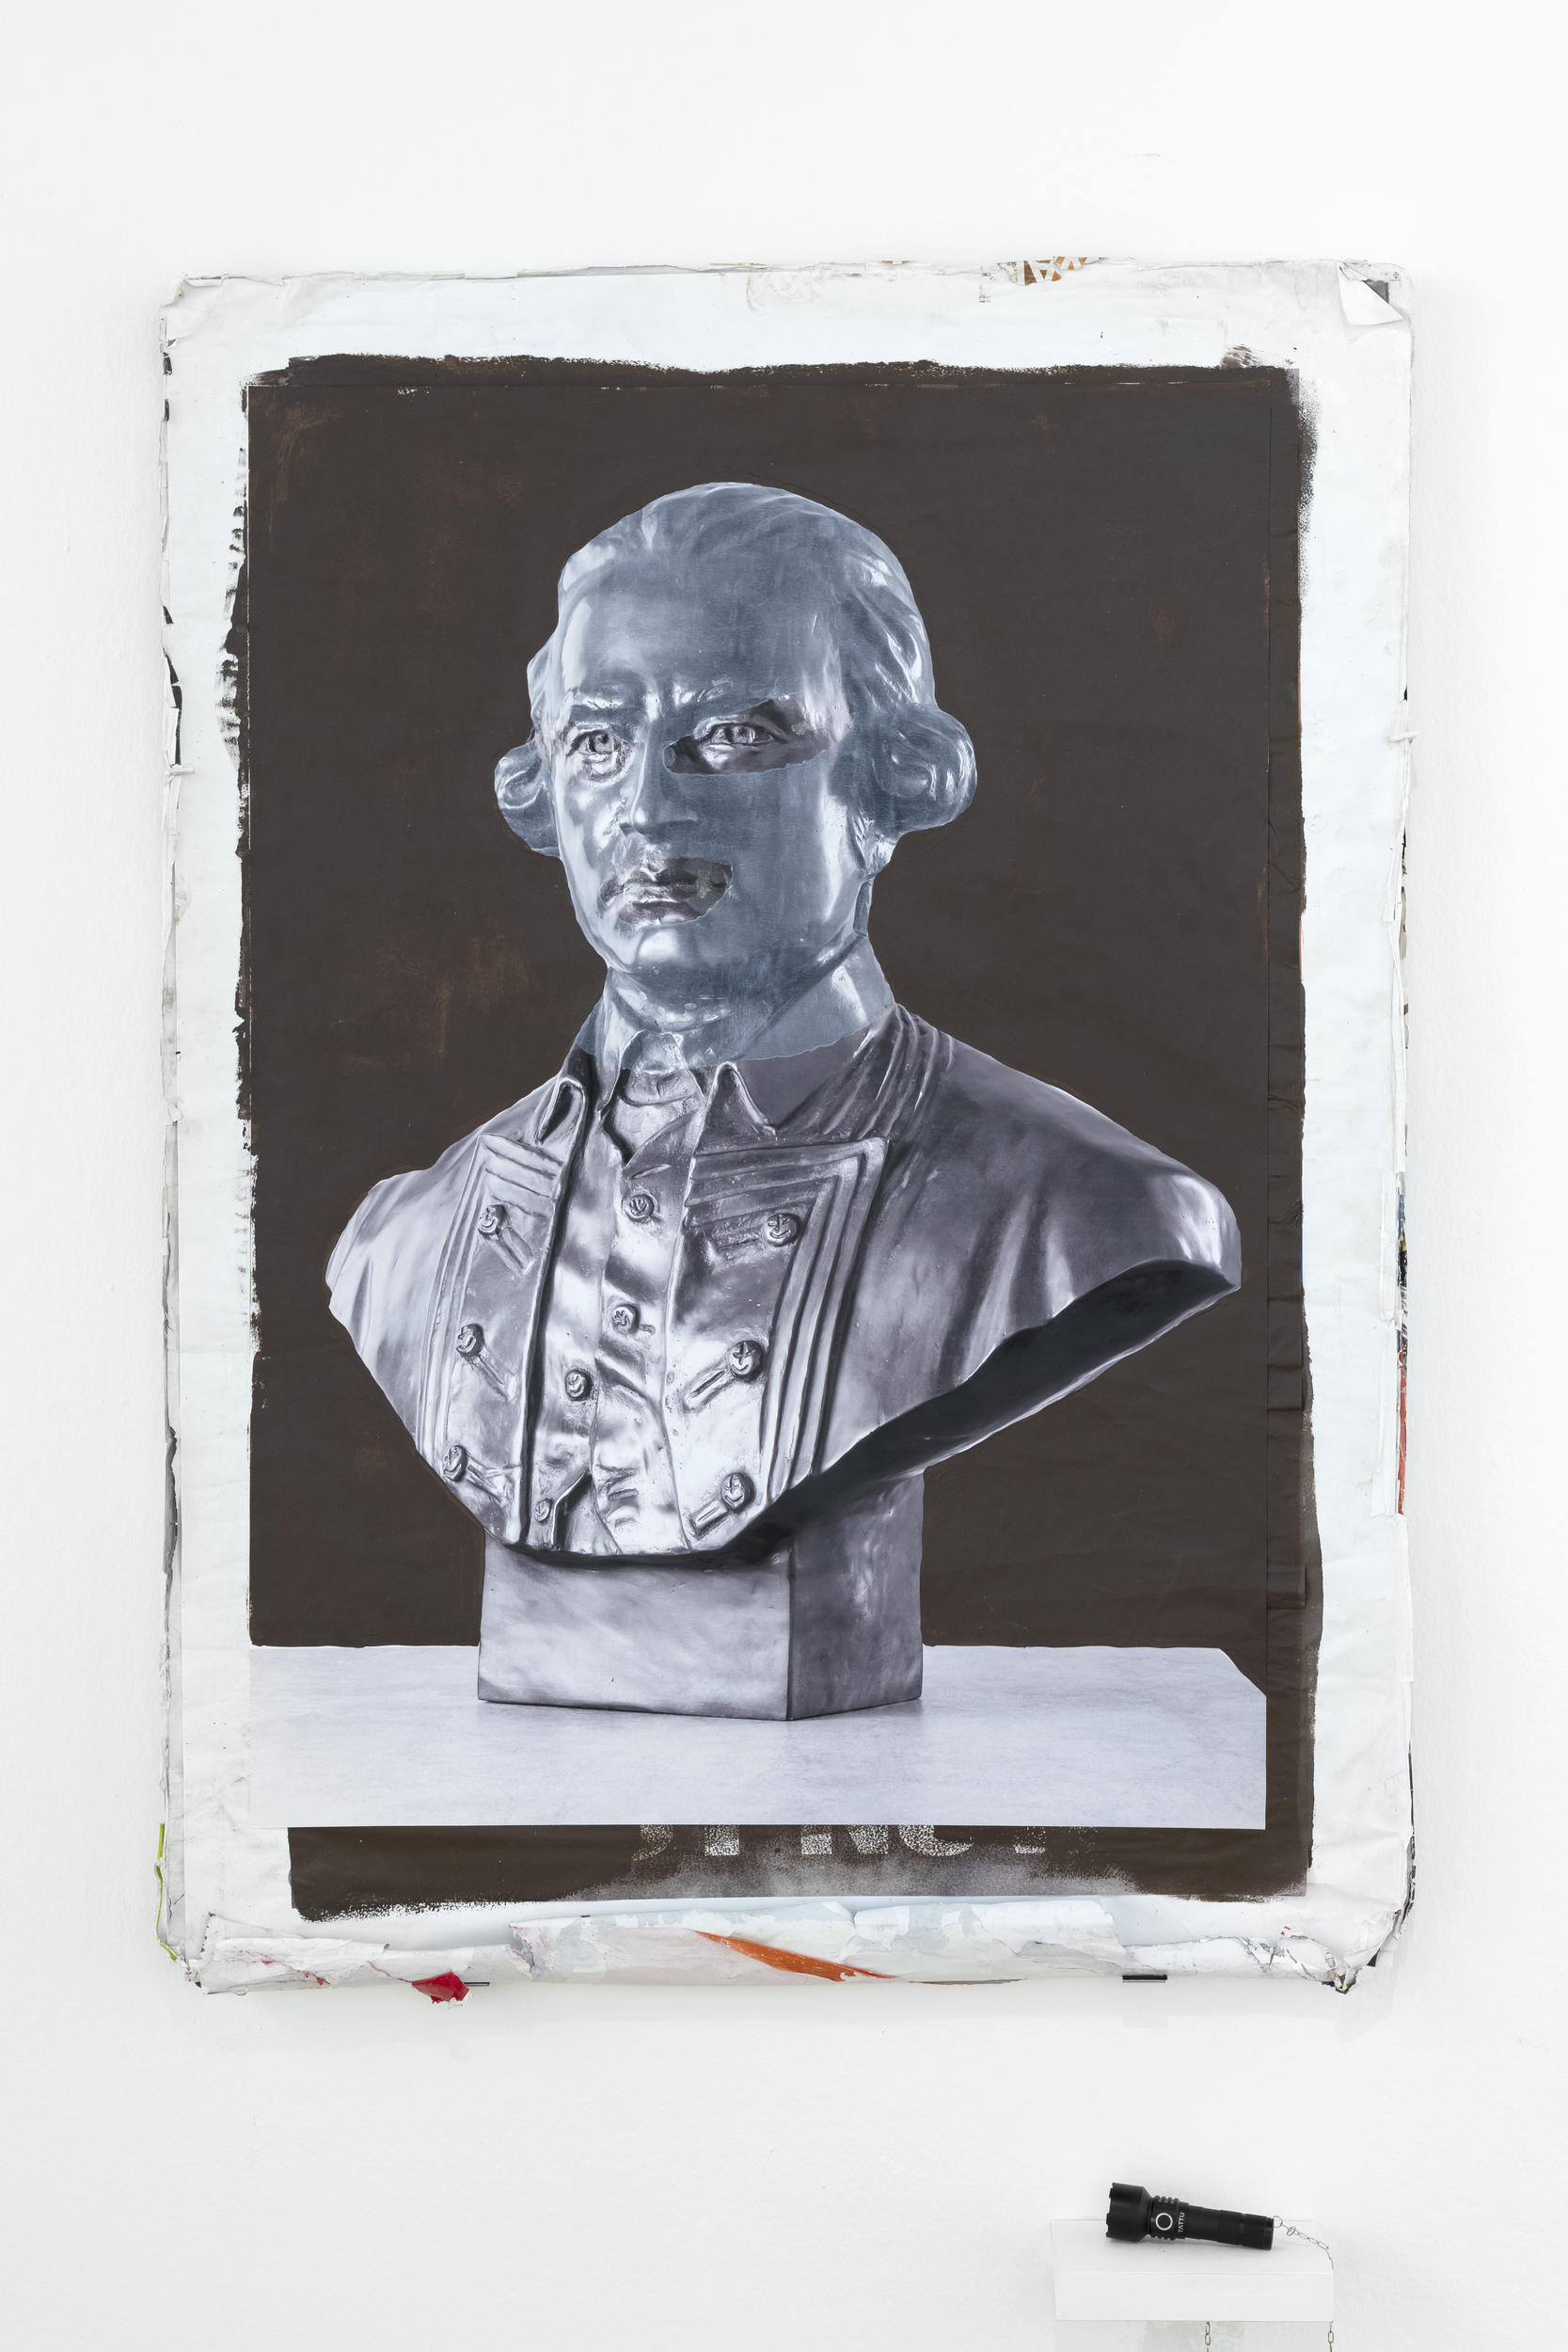 Painting of a bust, hung on a wall, with supplied black light torch nearby.